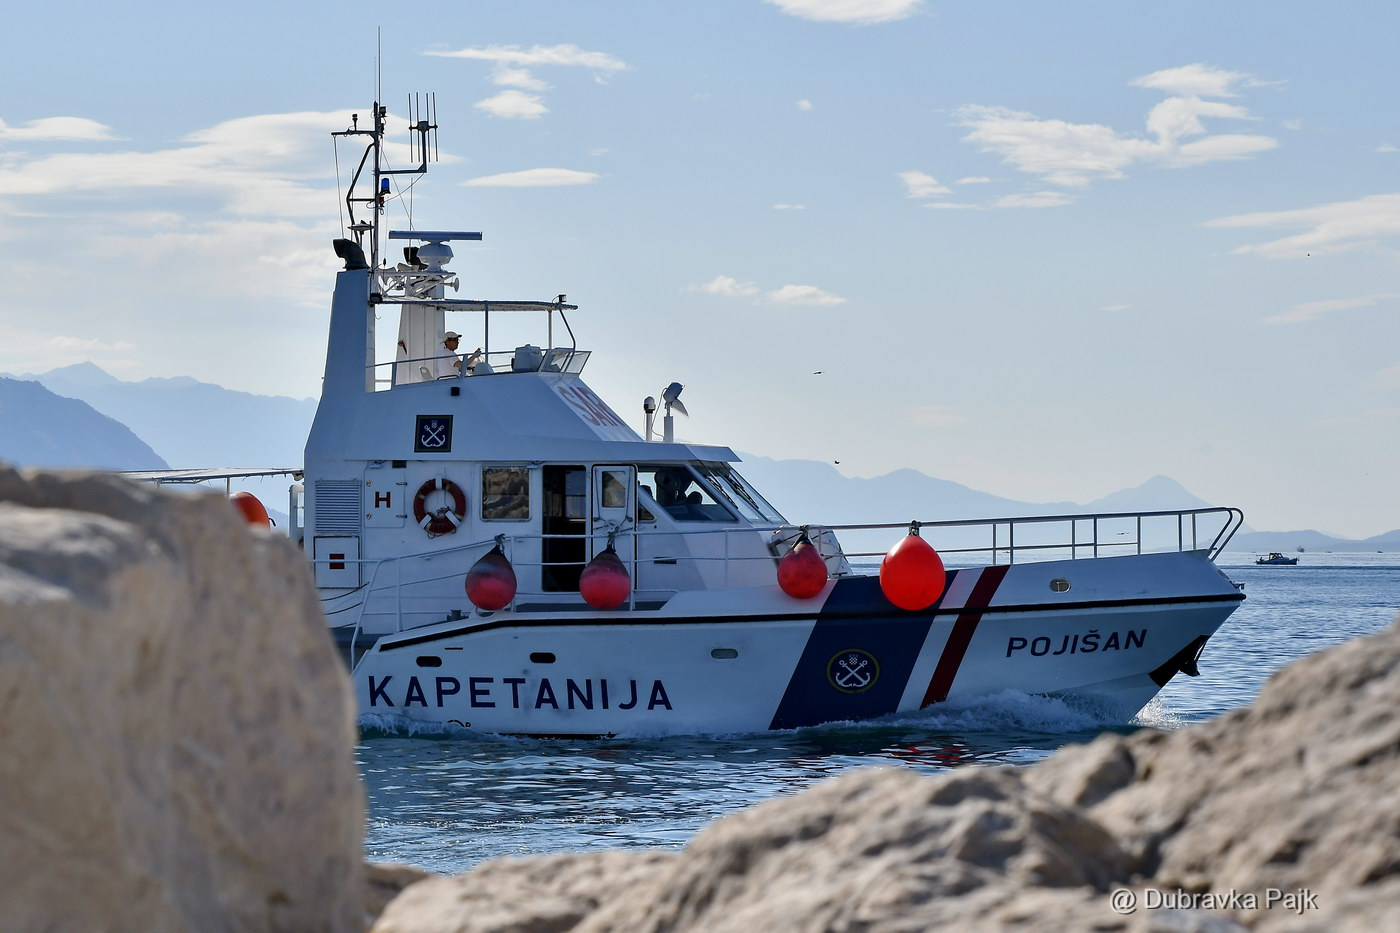 KOMISKA REGATTA, MAY 2019, SPLIT, KOMIZA